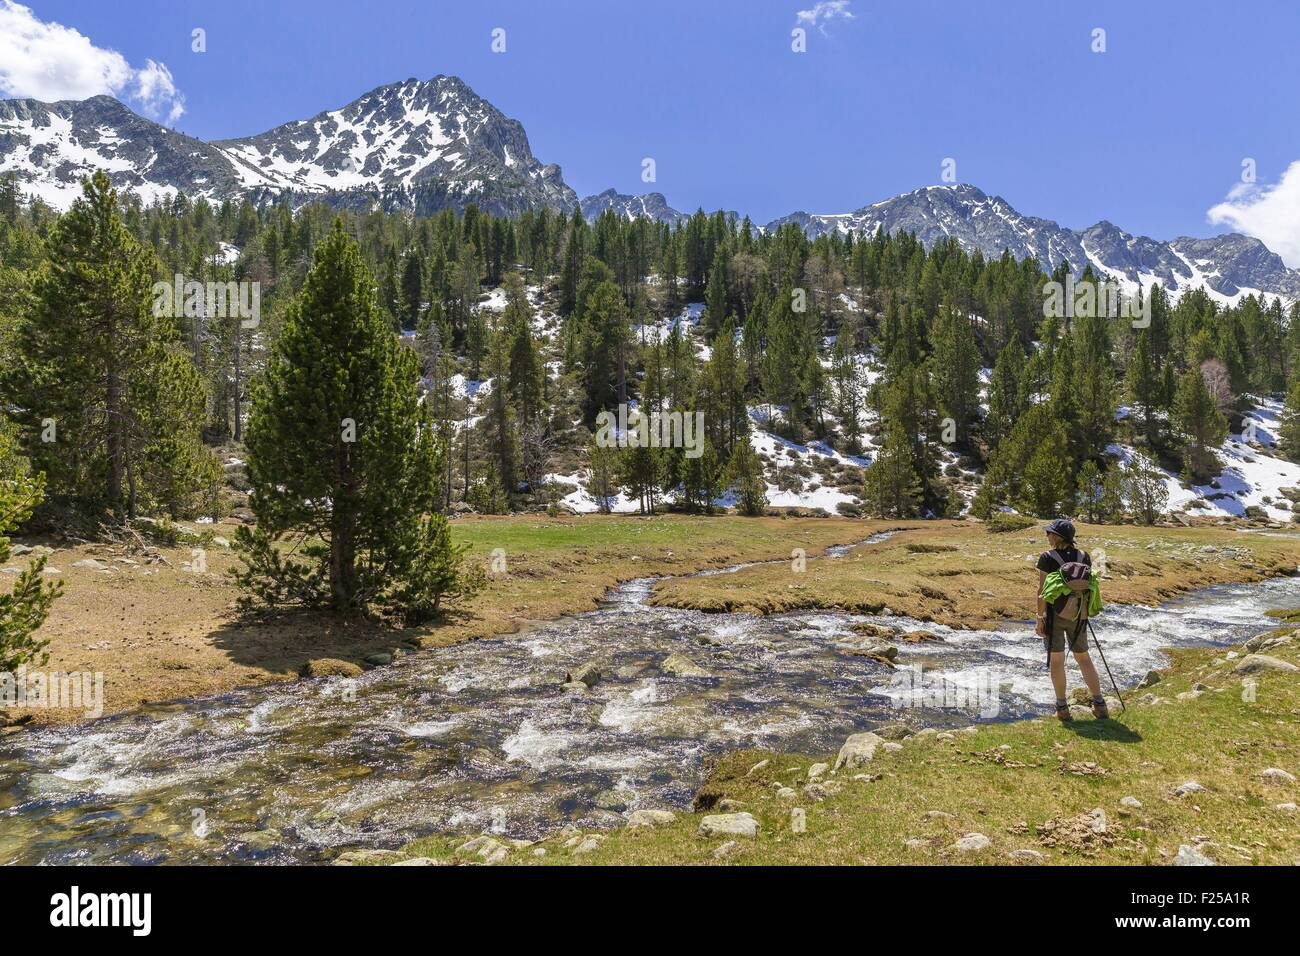 Andorra, Escaldes Engordany, hiker in the the Madriu-Perafita-Claror valley, listed as World Heritage by UNESCO - Stock Image